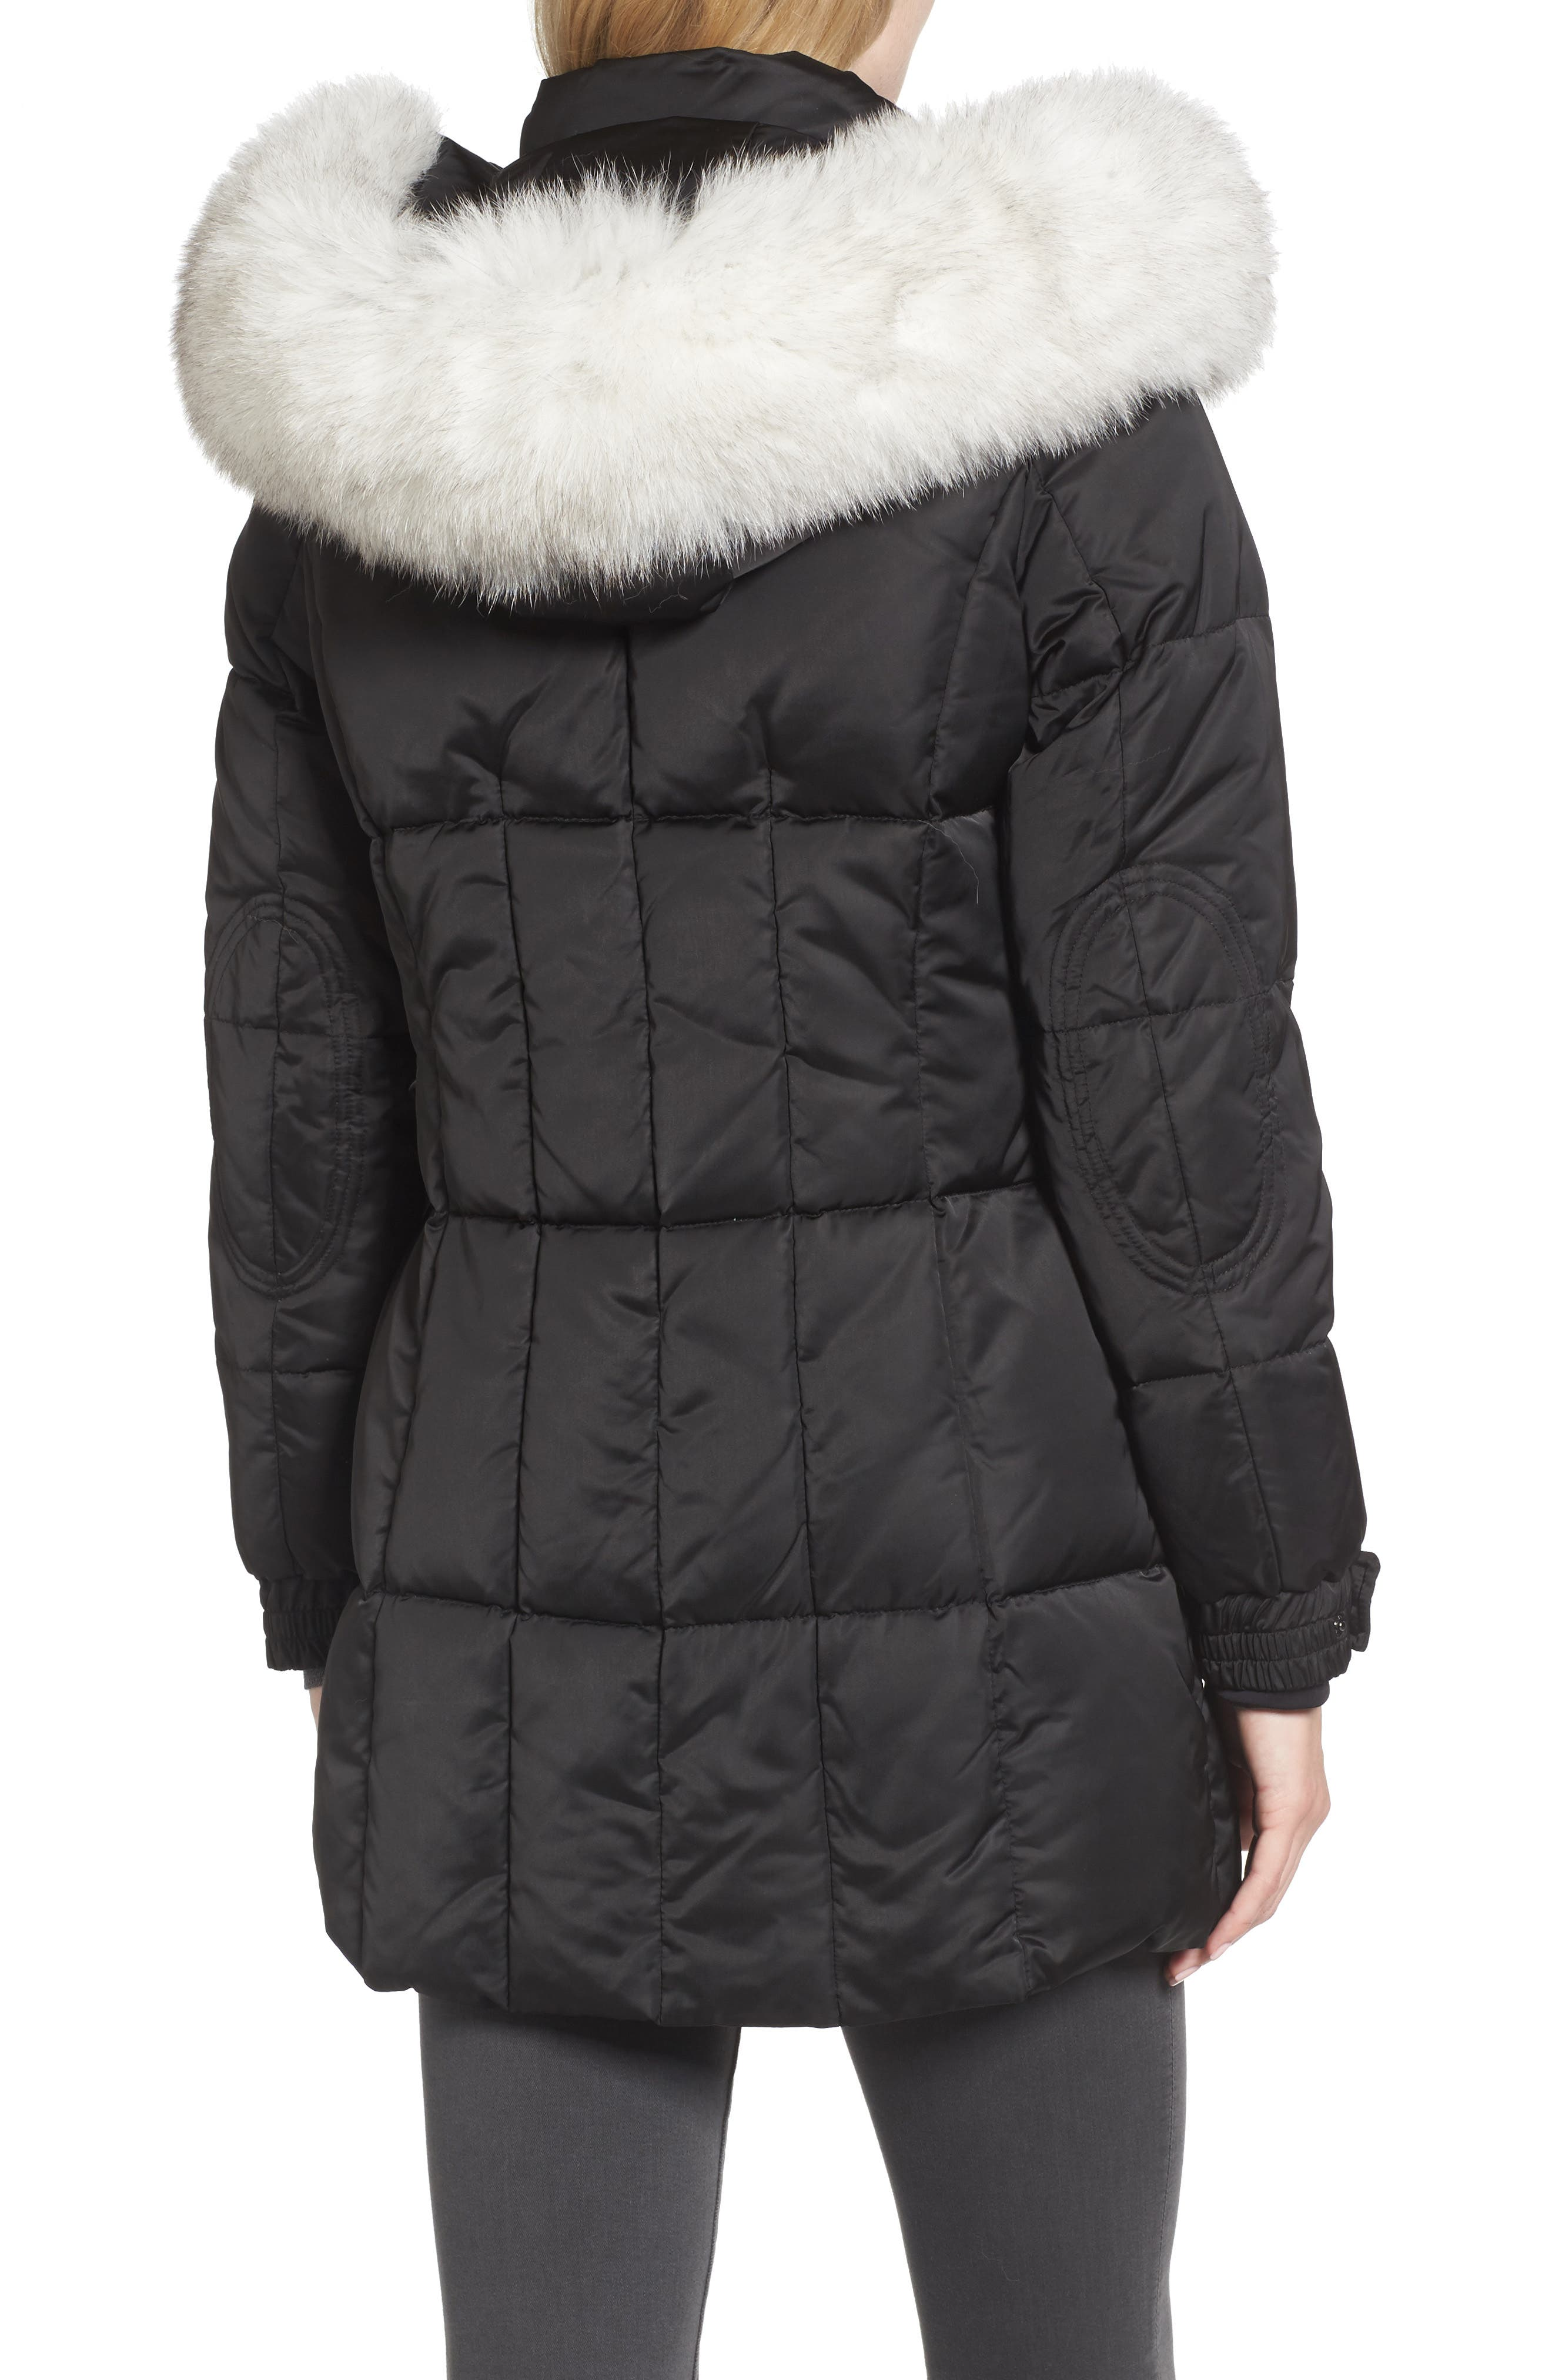 Puffer Jacket with Genuine Fox Fur Trim,                             Alternate thumbnail 2, color,                             Black